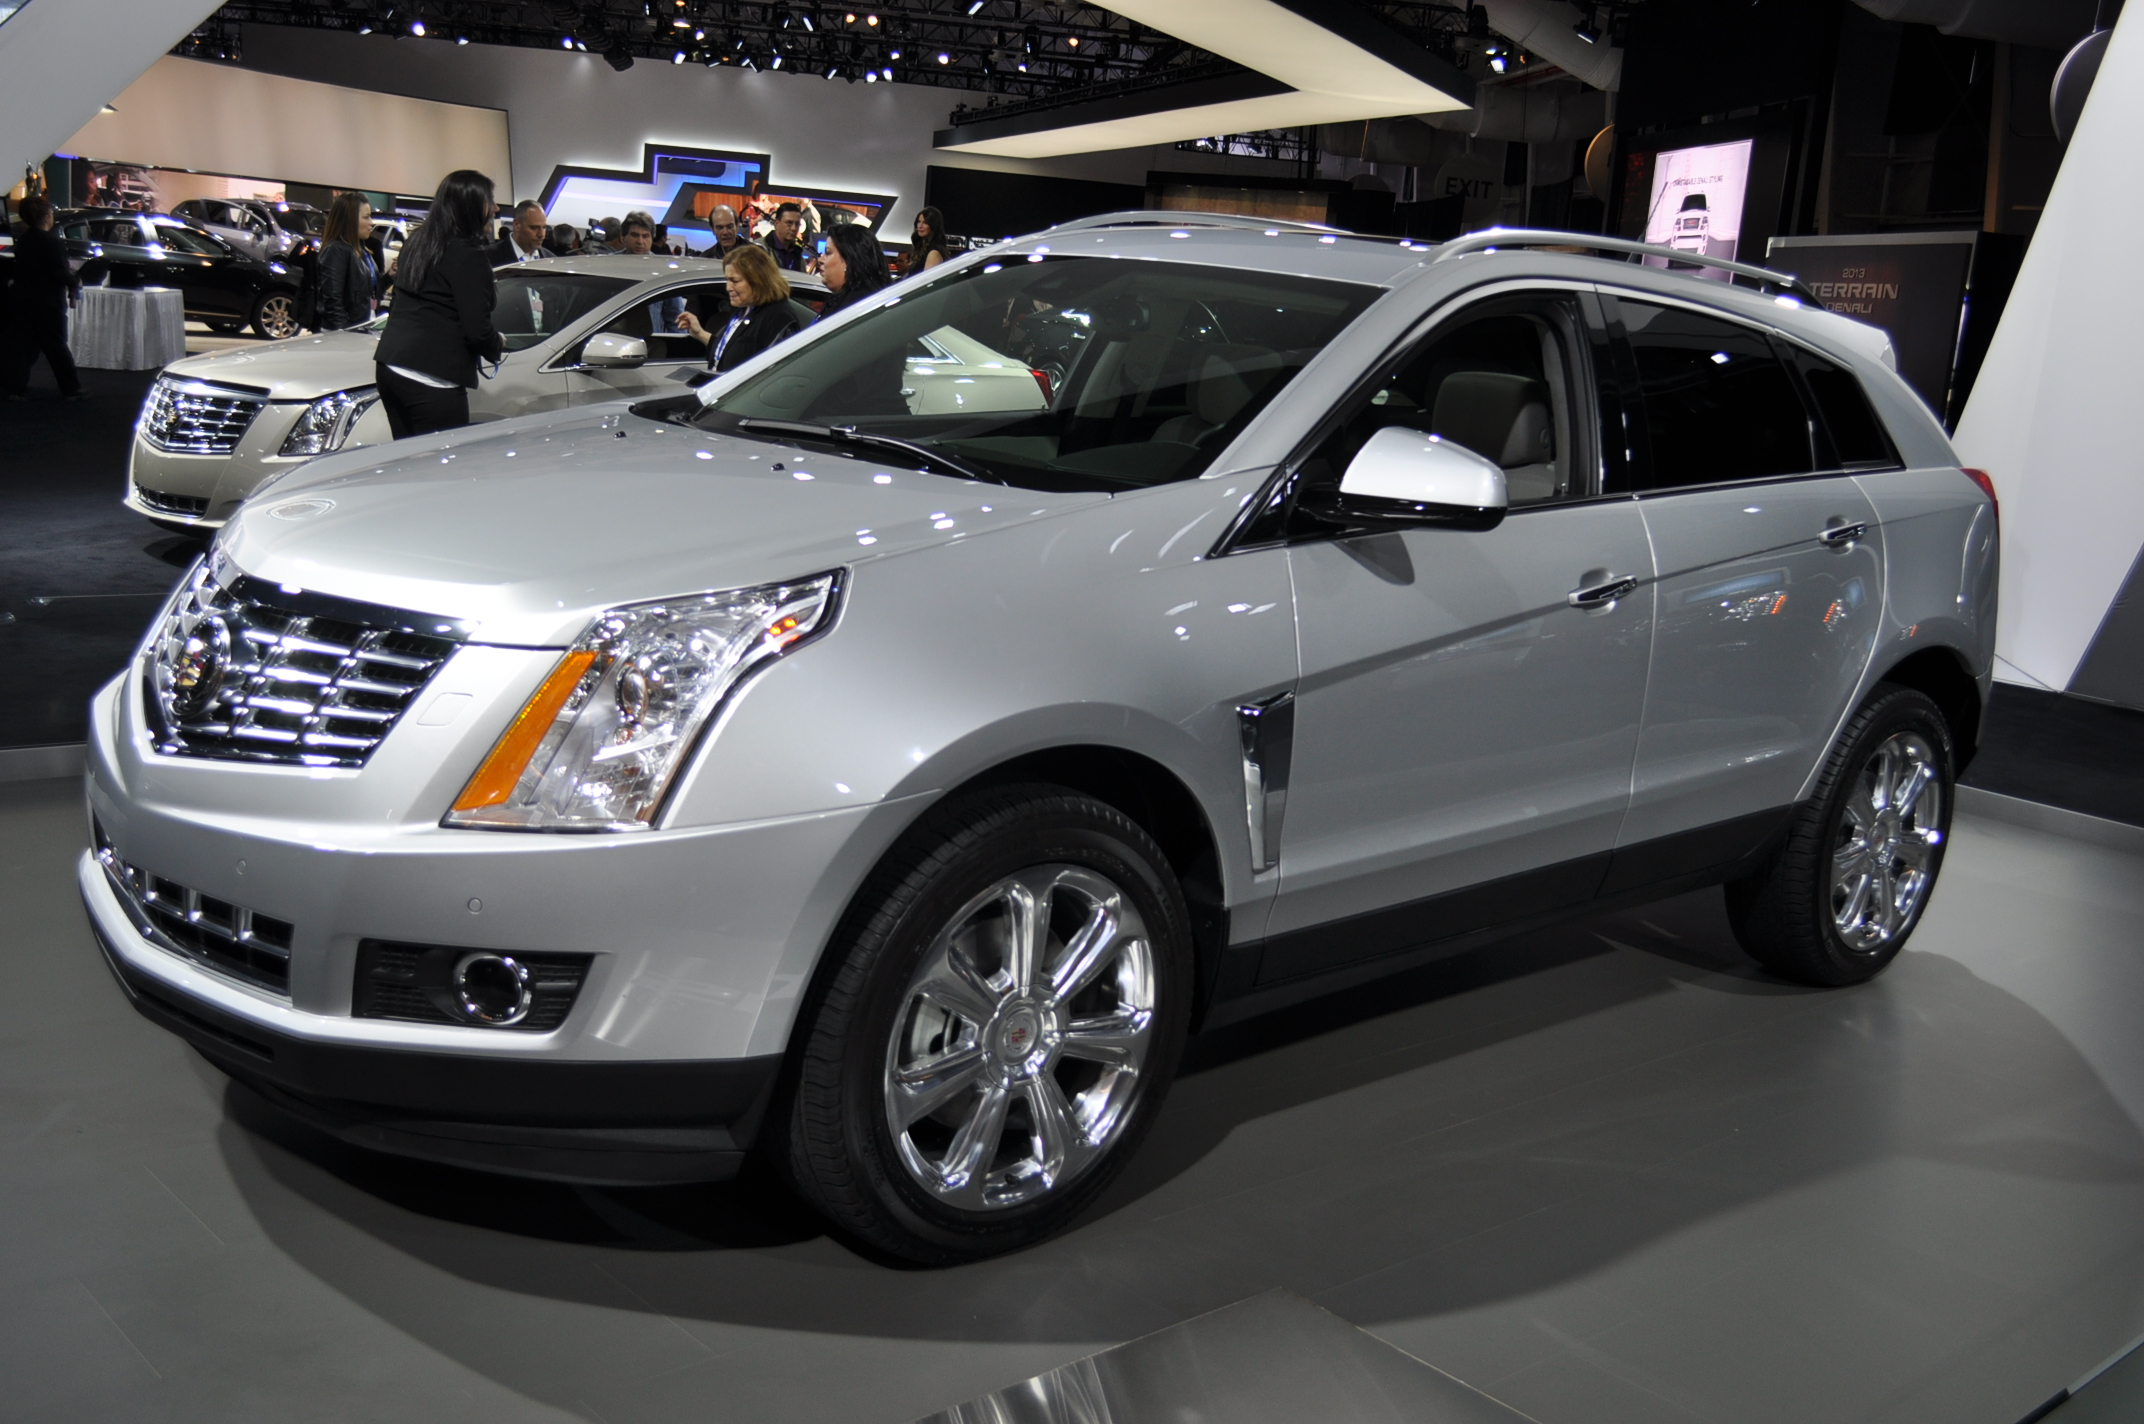 reviews rating performance collection srx cadillac motor and trend dashboard fwd suv cars